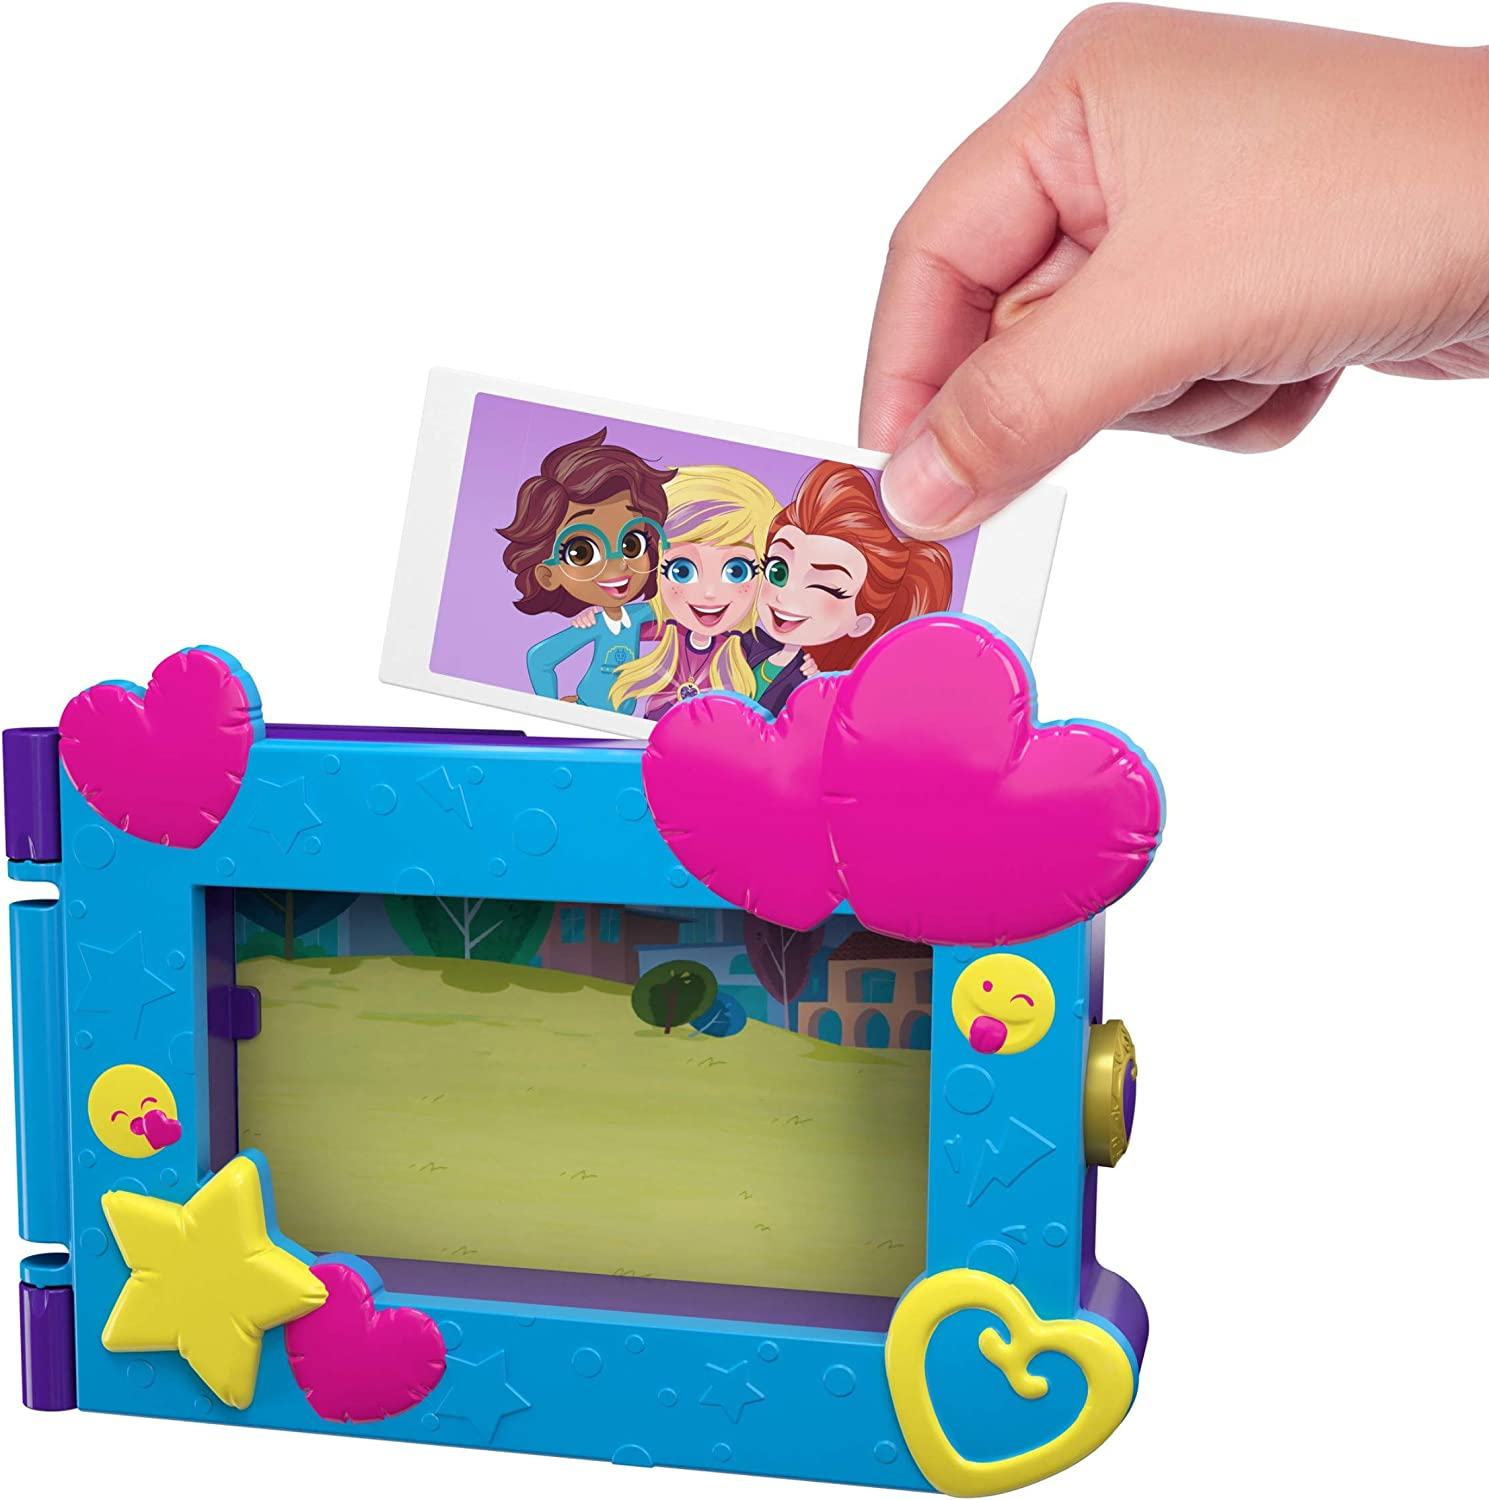 Frame by Mattel Playset NEW Polly Pocket Say Freeze